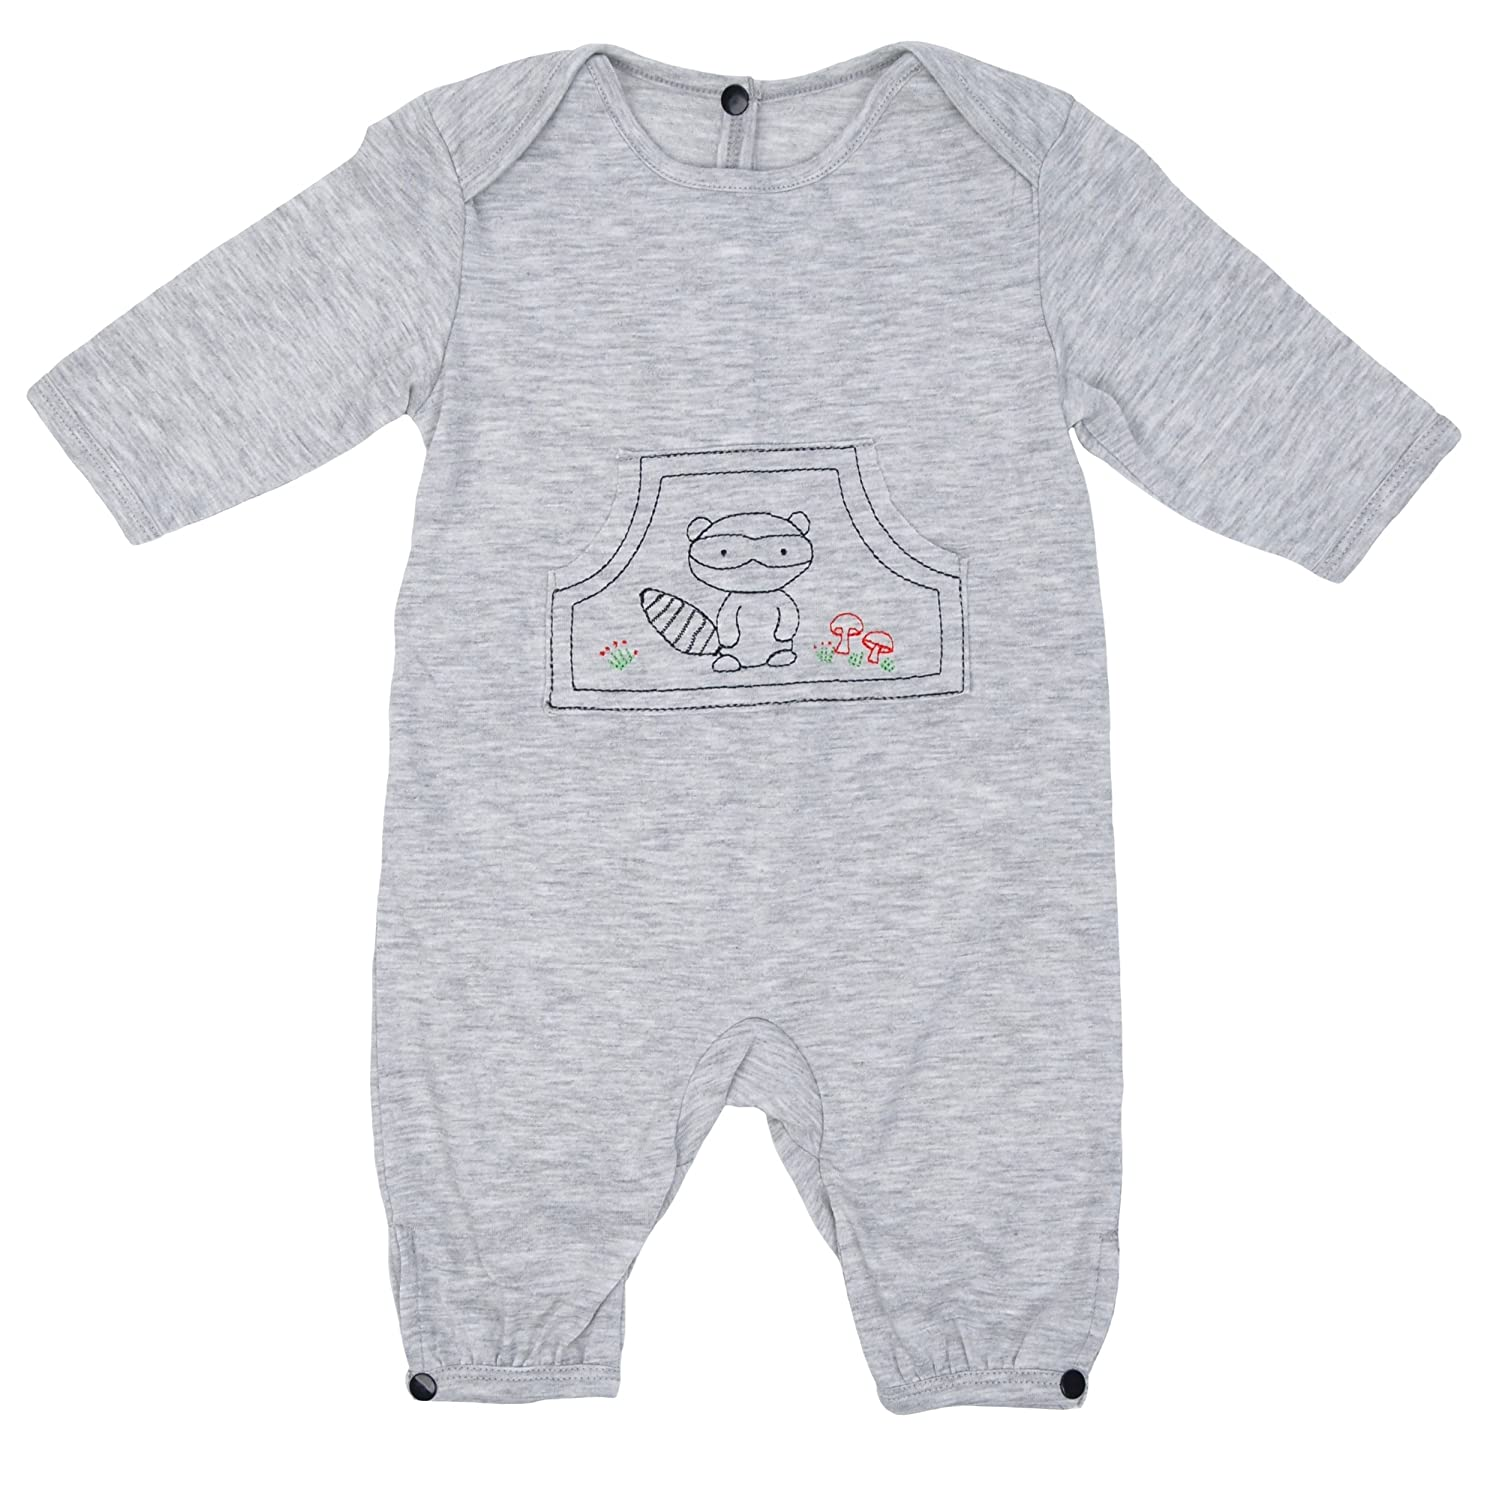 Empress Arts Unisex-Baby Infant Shortall Romper